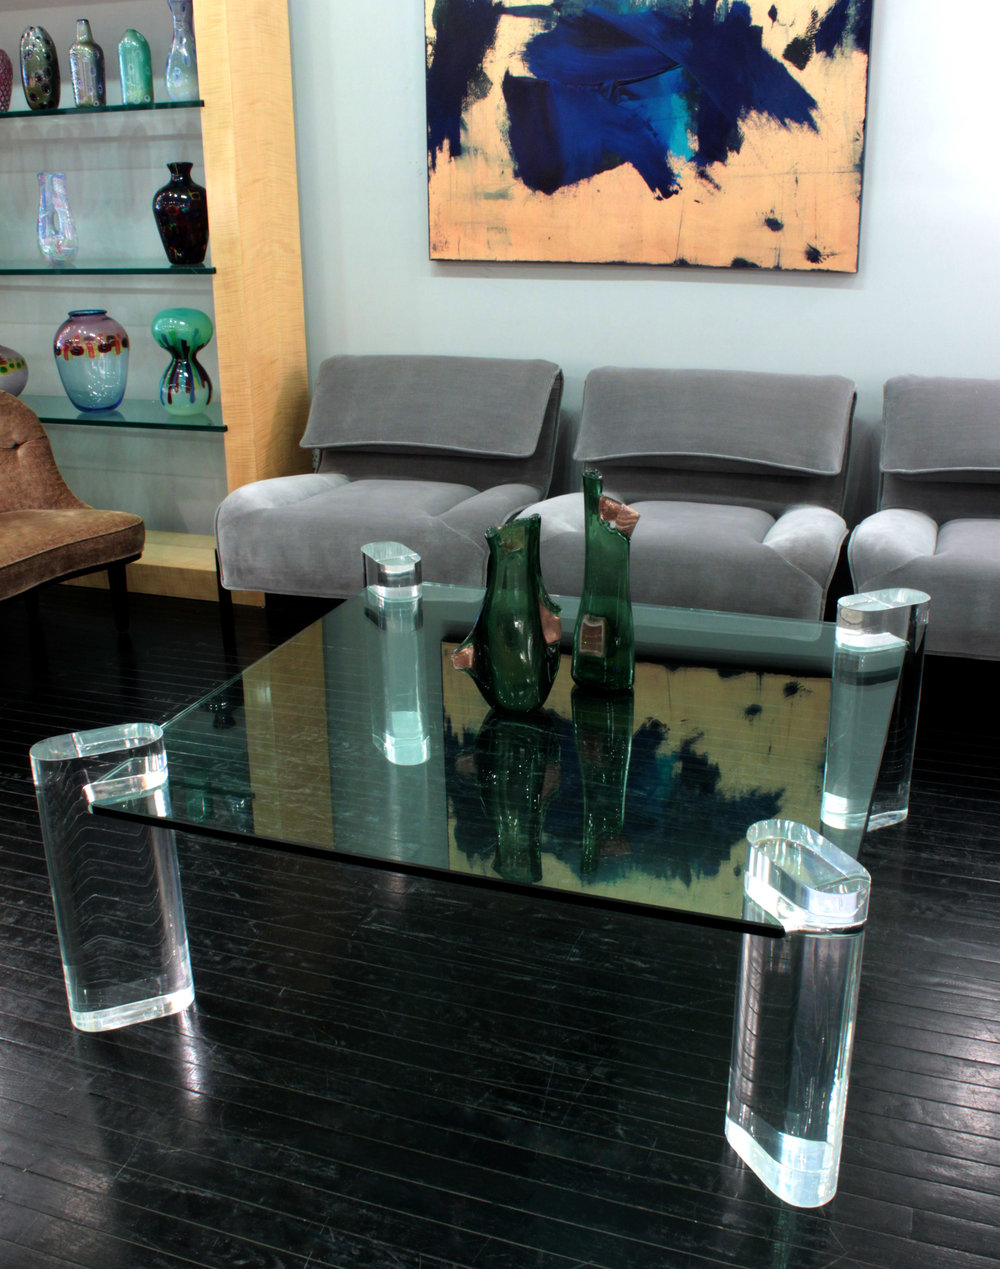 Springer 85 4 lucite legs coffeetable287 env hires.jpg